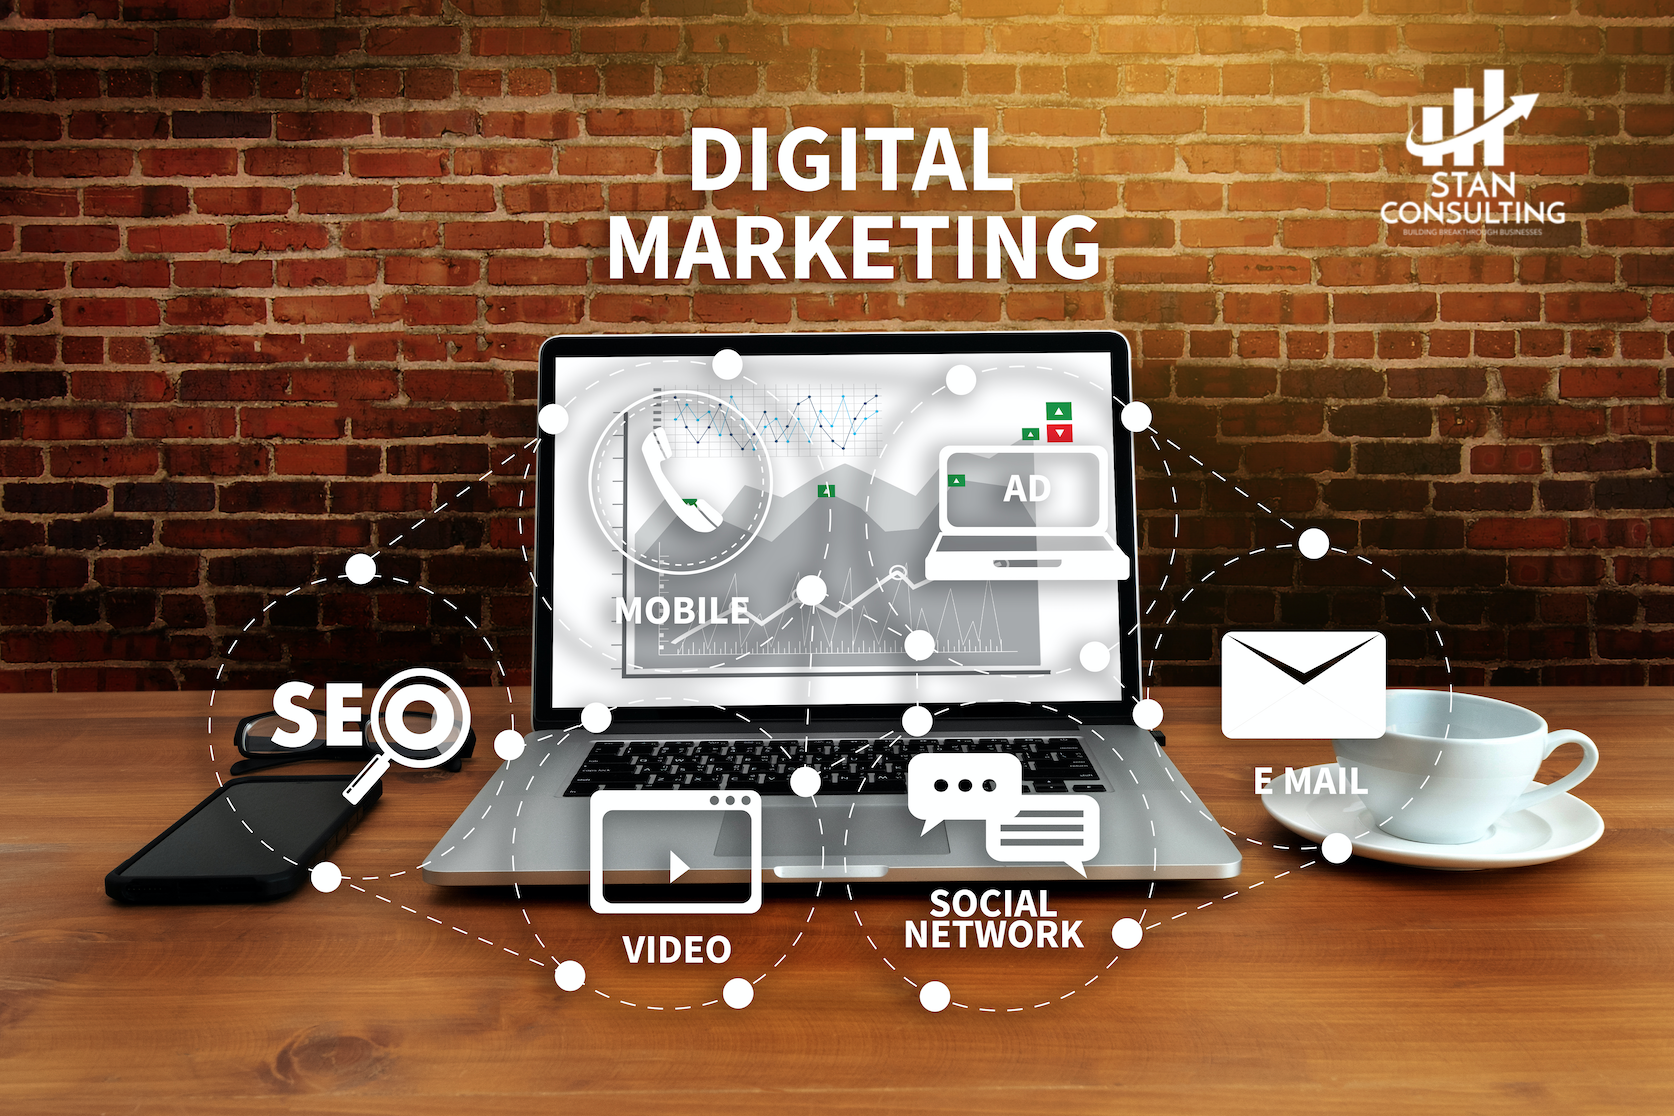 SEO services from leading full service digital marketing agency Stan Consulting www.stanconsultingllc.com